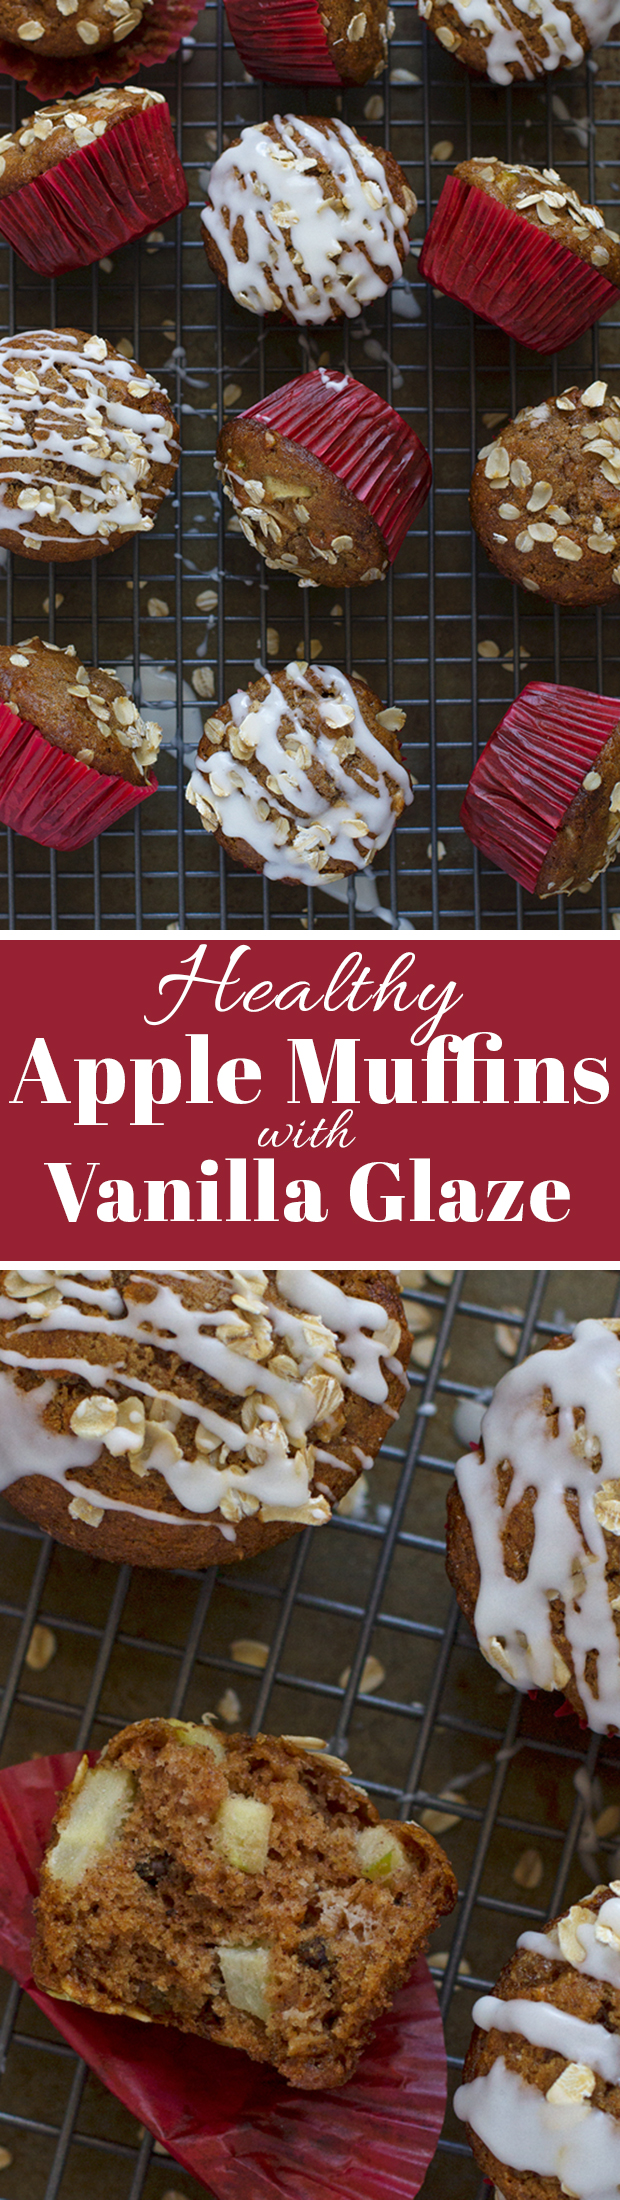 Healthy Apple Muffins with Vanilla Glaze  - Light on the sugar but SO GOOD! #applemuffins #muffins #healthymuffins | Littlespicejar.com